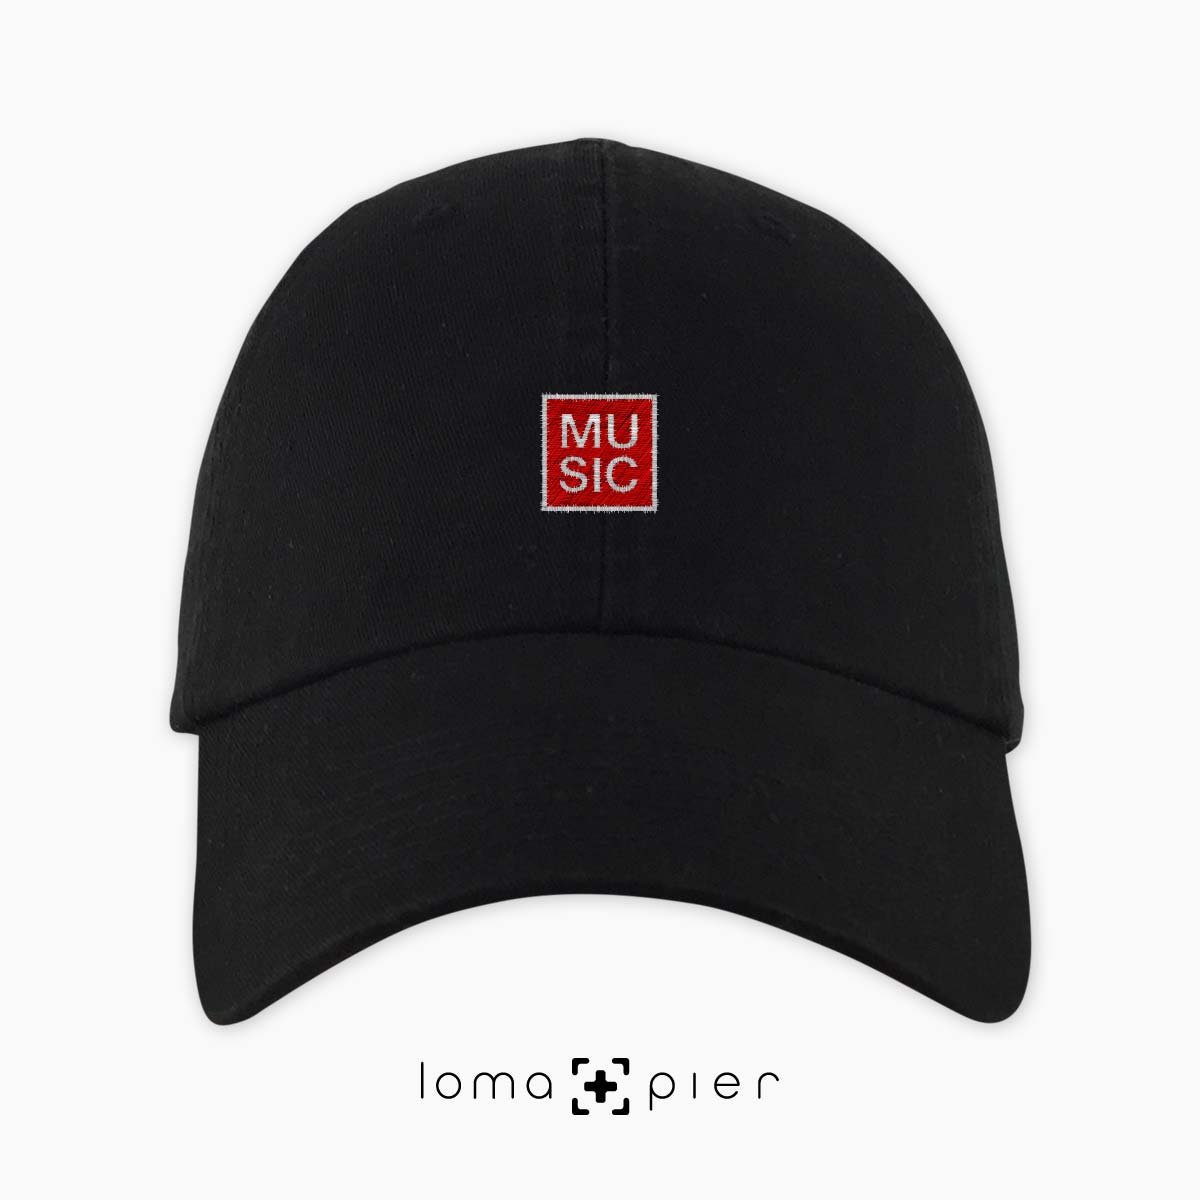 MUSIC BOX dad hat in black by loma+pier hat store